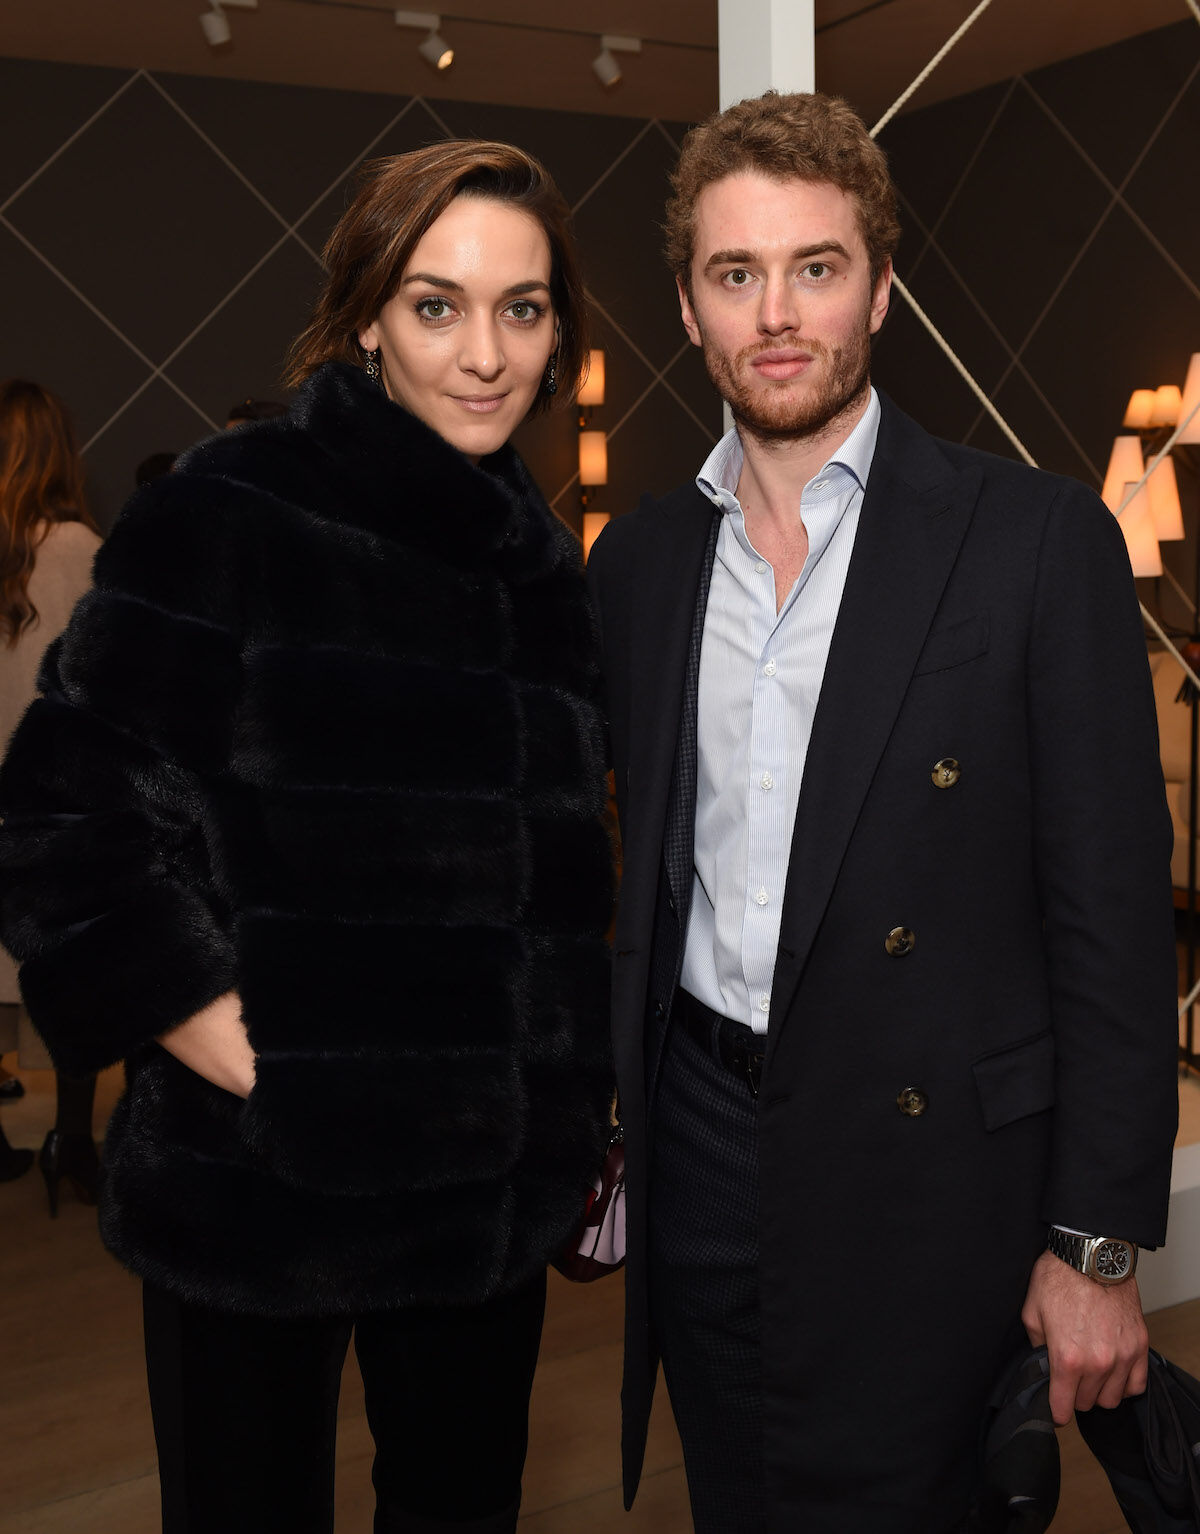 Inigo Philbrick (right) attends an opening at Galerie Patrick Seguin in London on February 25, 2016. Photo by Stuart C. Wilson/Getty Images for Galerie Patrick Sequin.